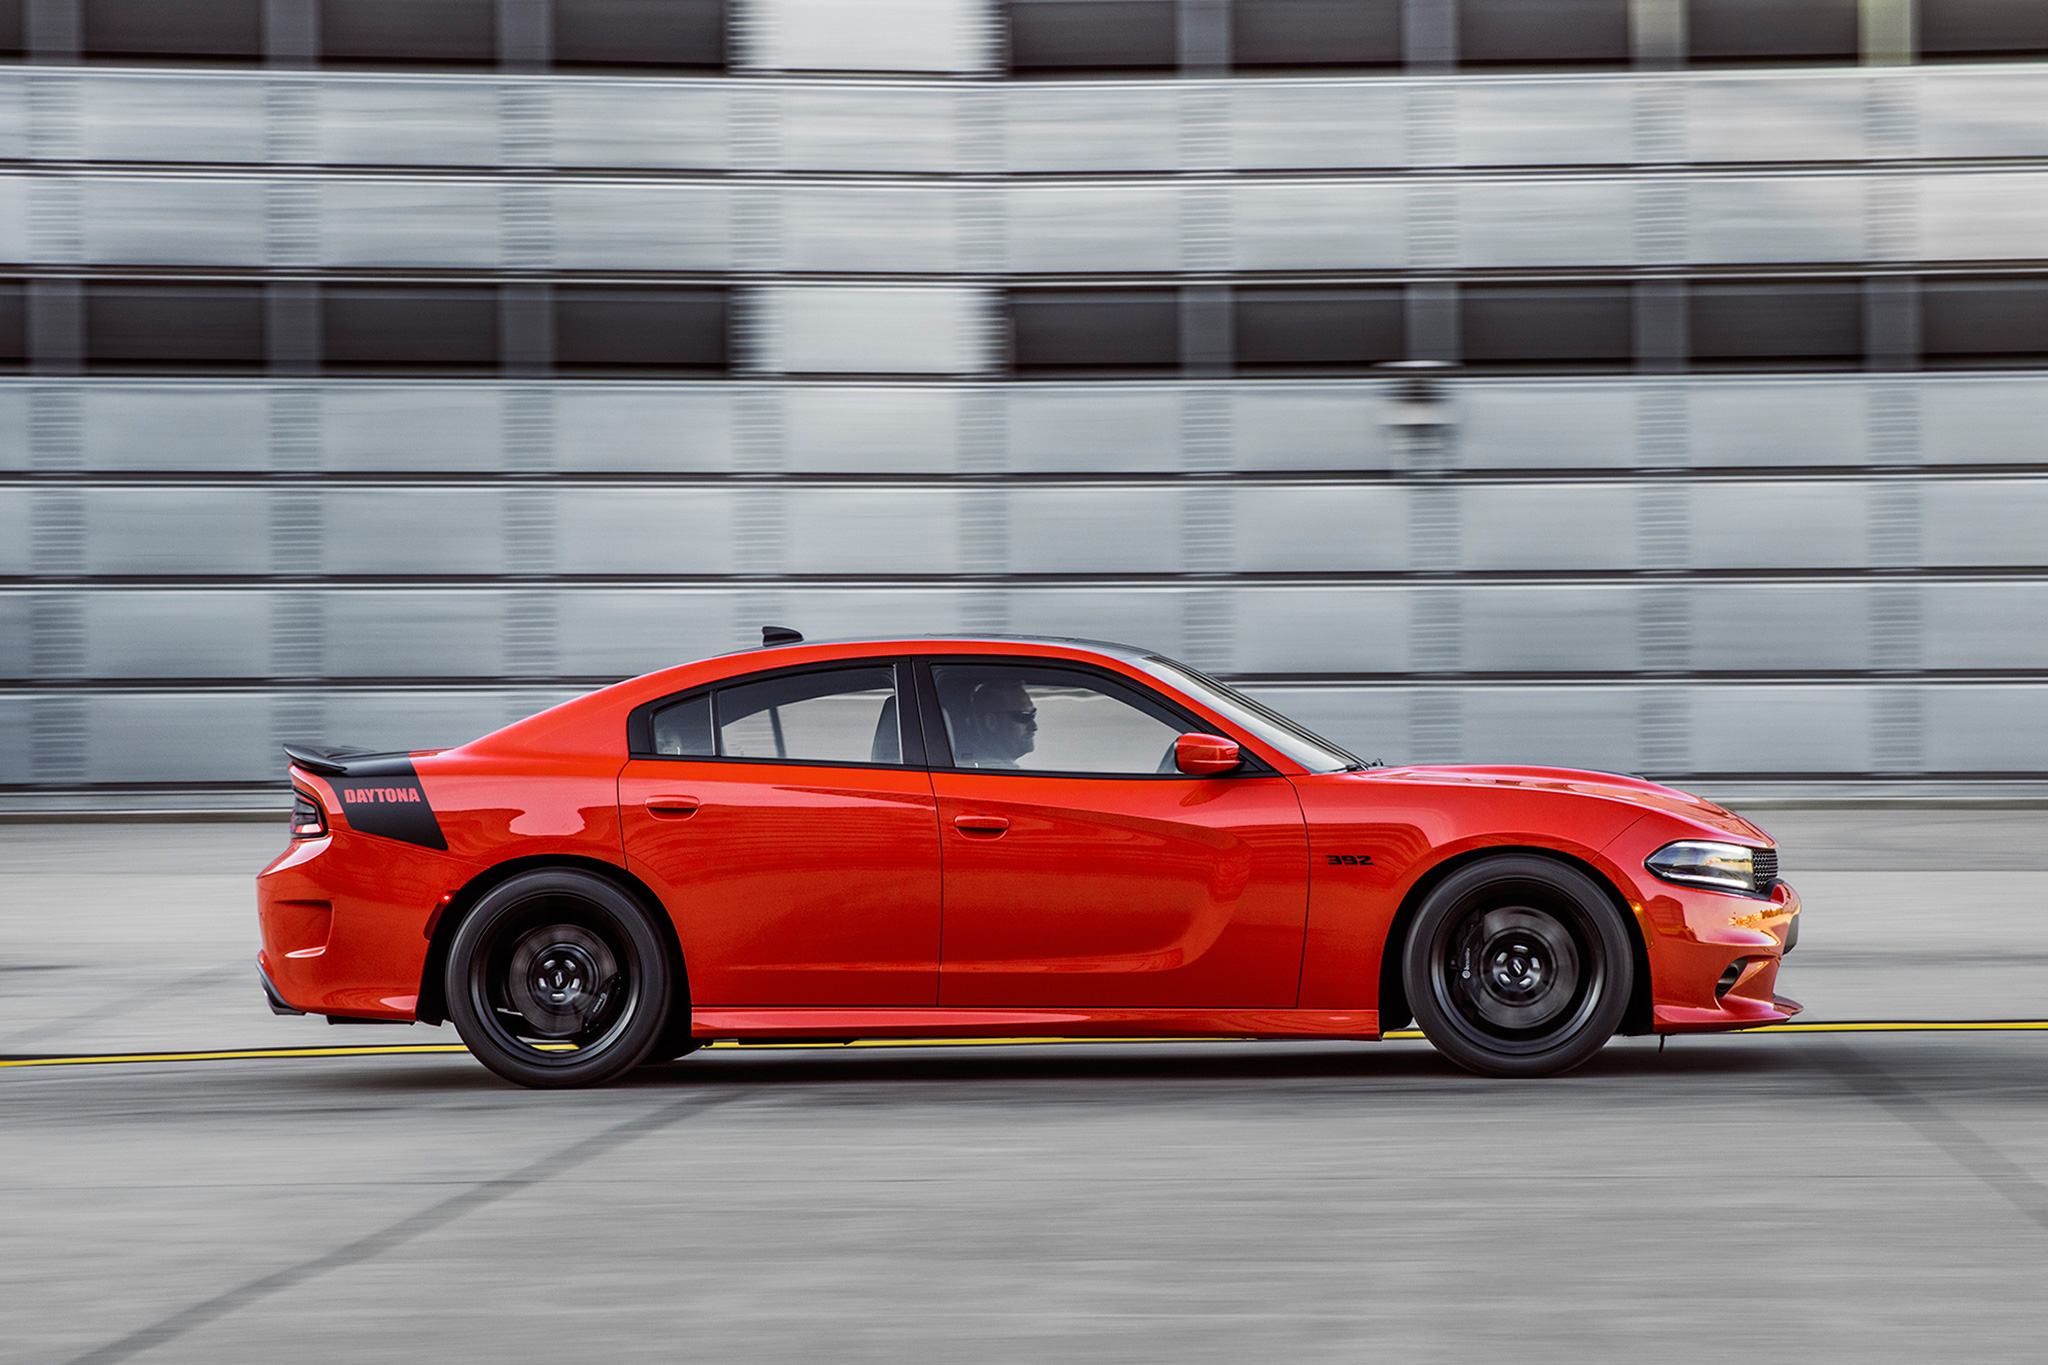 The 2017 Dodge Charger Daytona Specs Video s